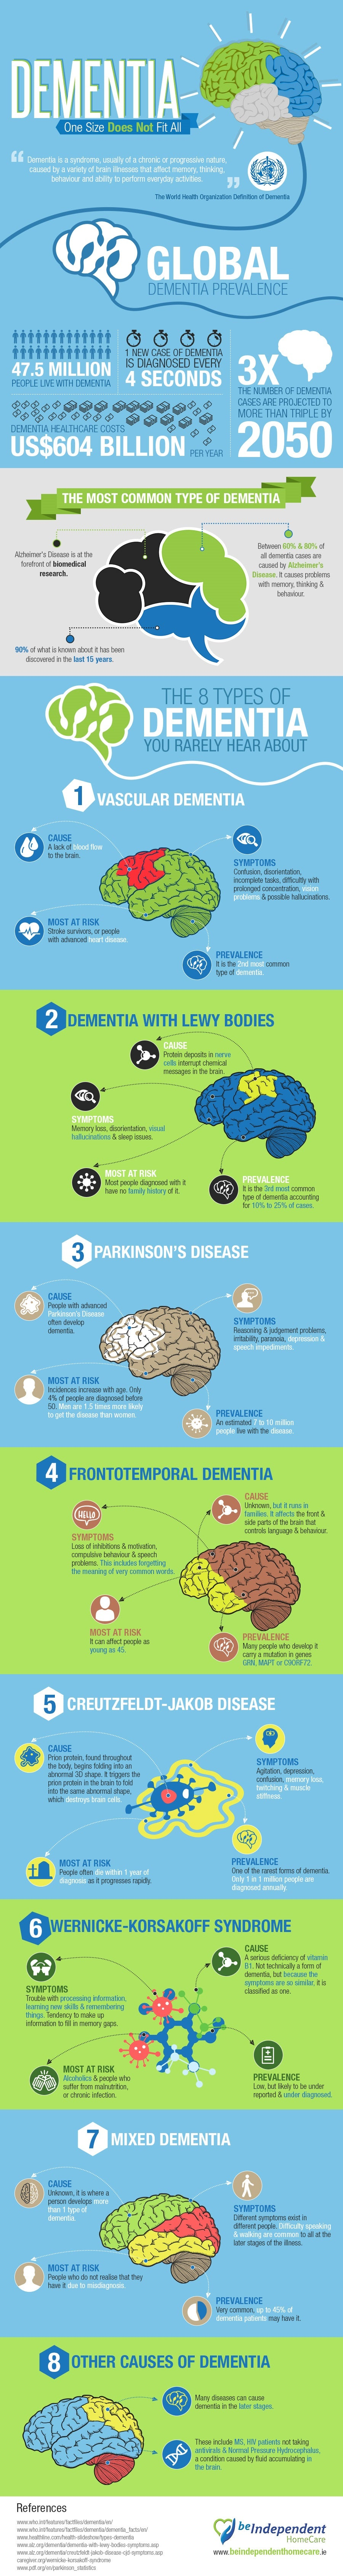 8 types of dementia infographic